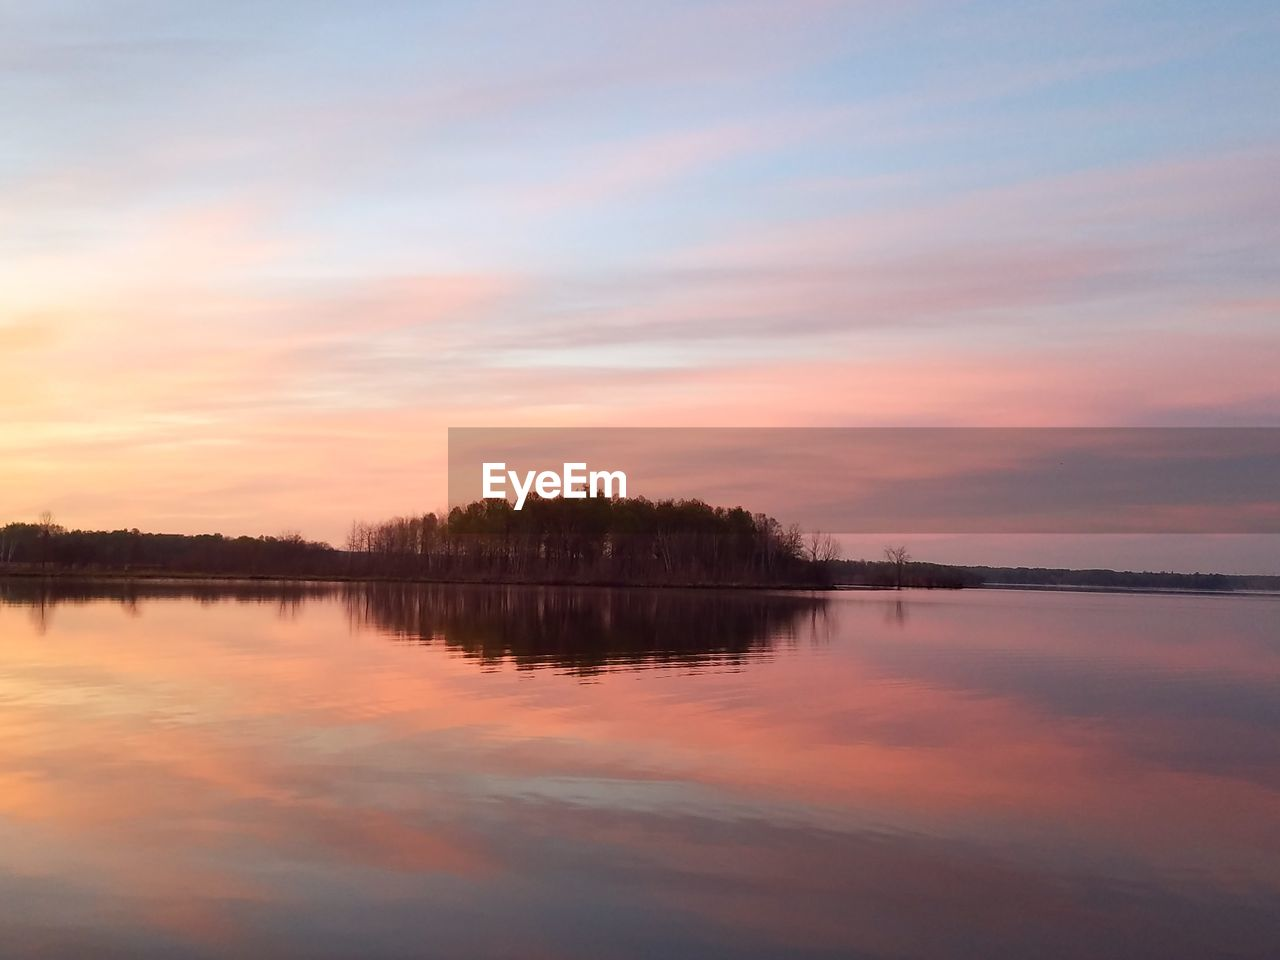 sky, reflection, sunset, beauty in nature, scenics - nature, tranquility, water, tranquil scene, lake, cloud - sky, waterfront, nature, no people, idyllic, orange color, non-urban scene, tree, silhouette, symmetry, outdoors, reflection lake